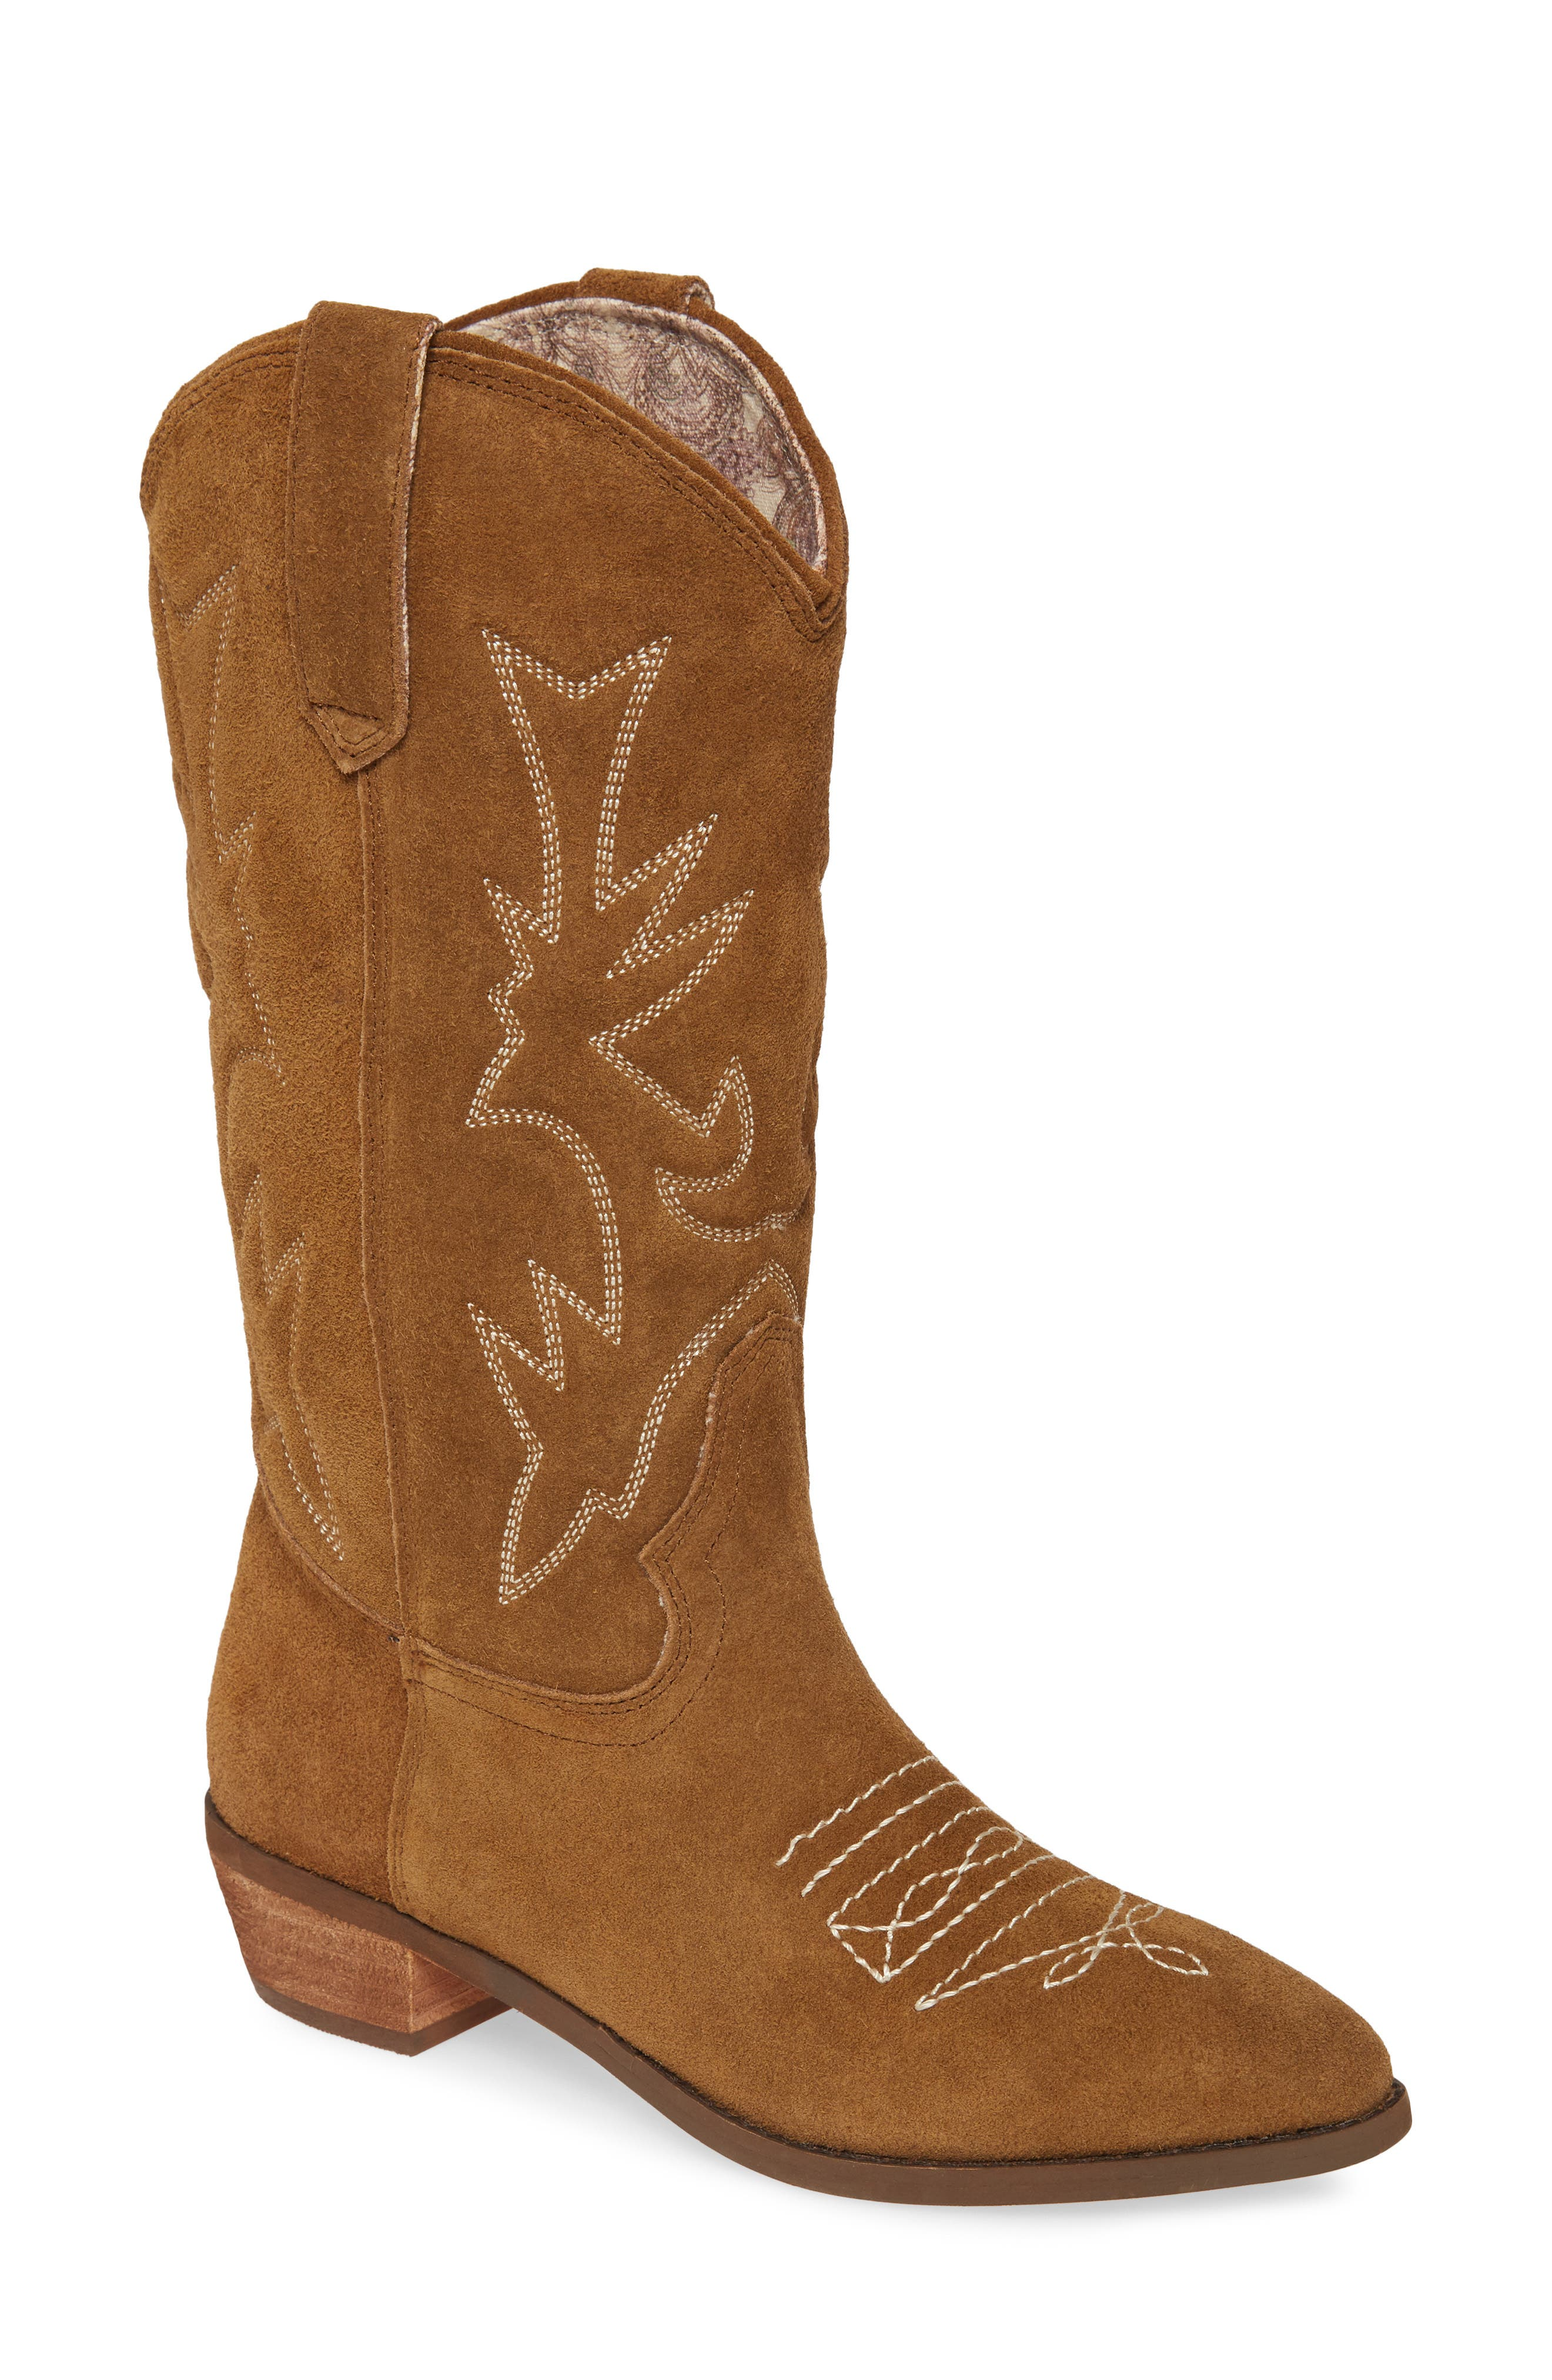 Traditional stitched designs and suede construction help this Western boot prove that there\\\'s no reason to mess with a classic. Style Name: Band Of Gypsies Cimarron Western Boot (Women). Style Number: 5894461. Available in stores.